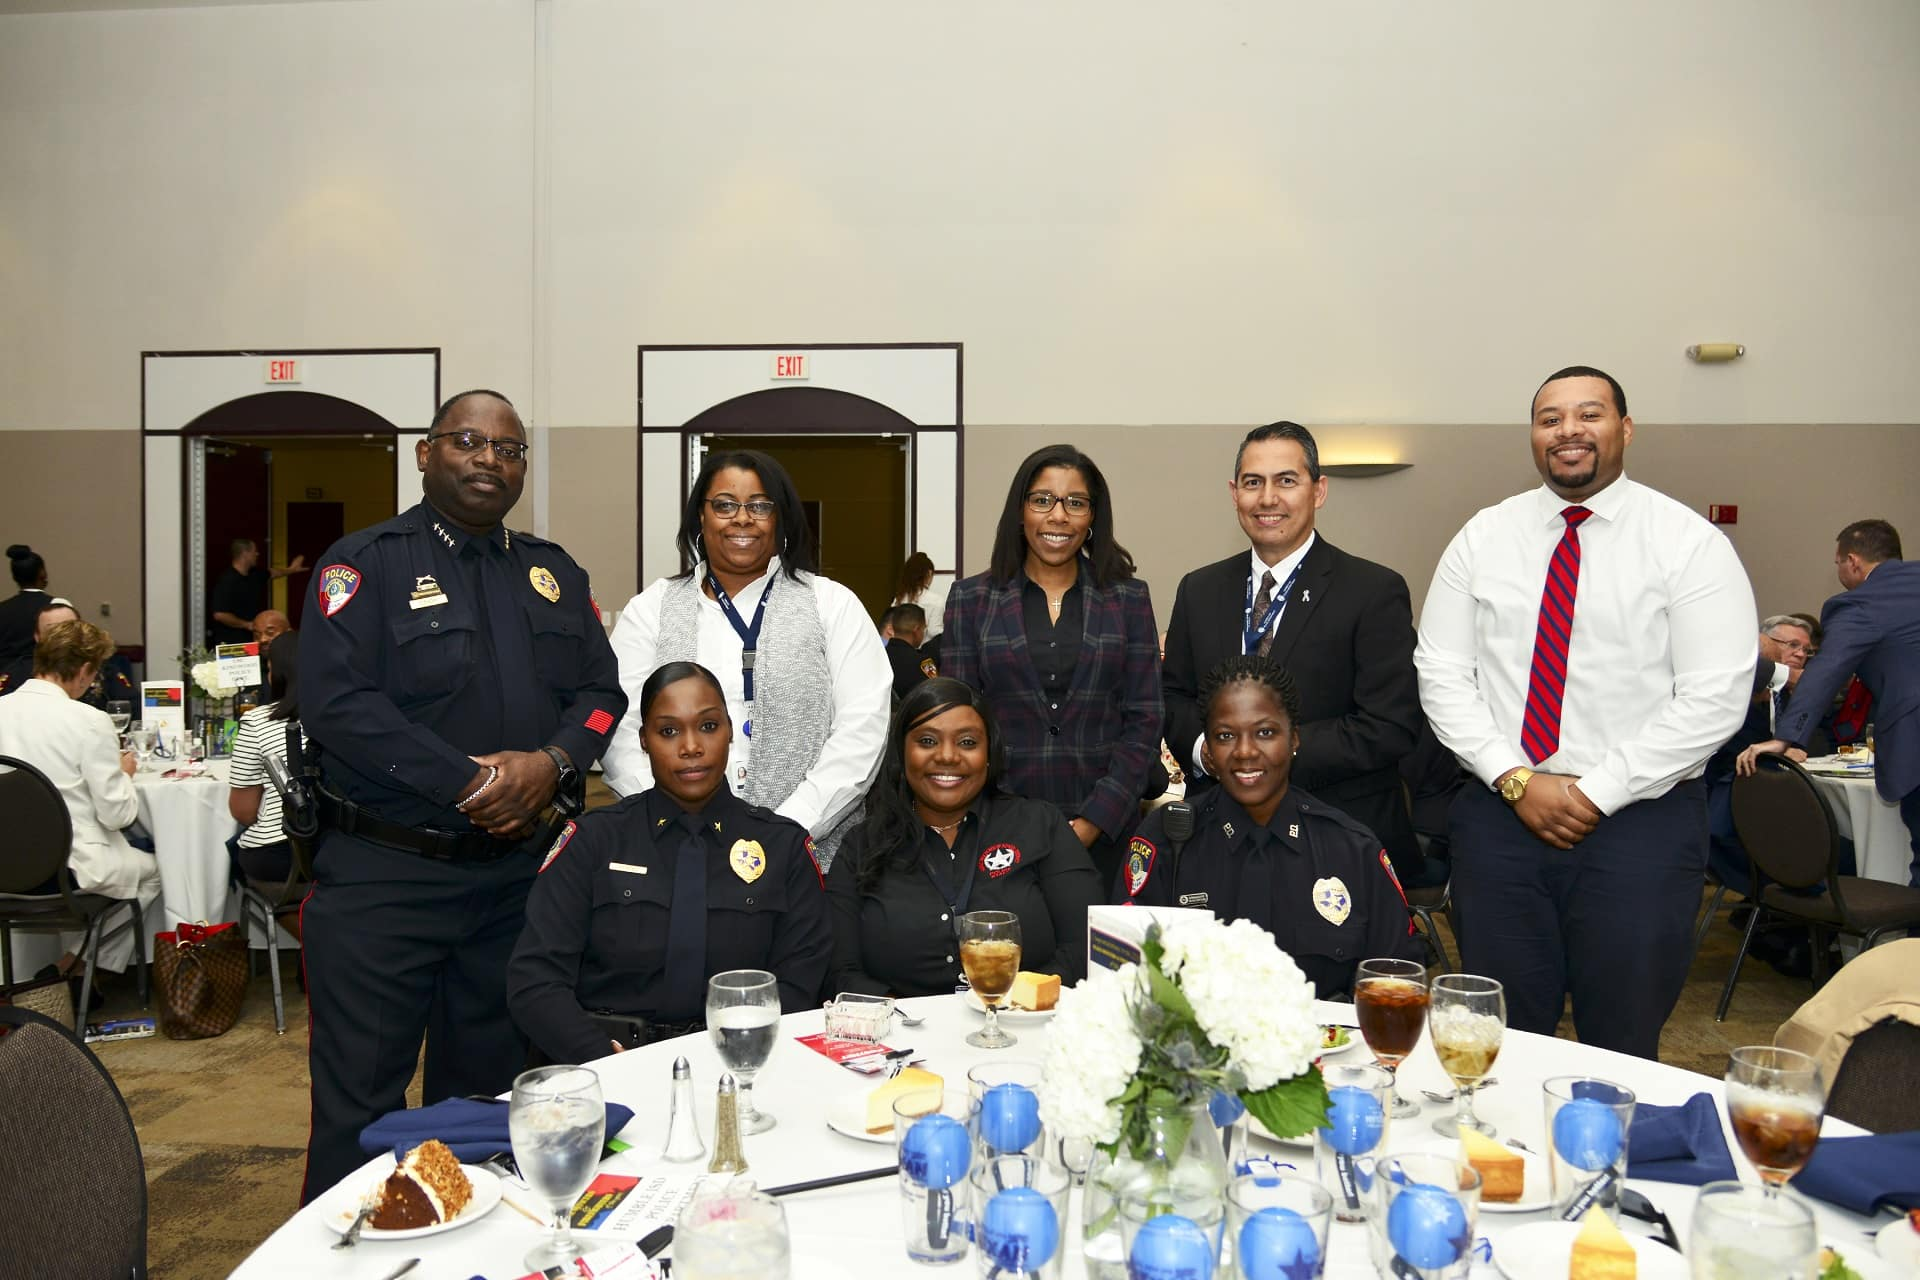 Firefighter Luncheon